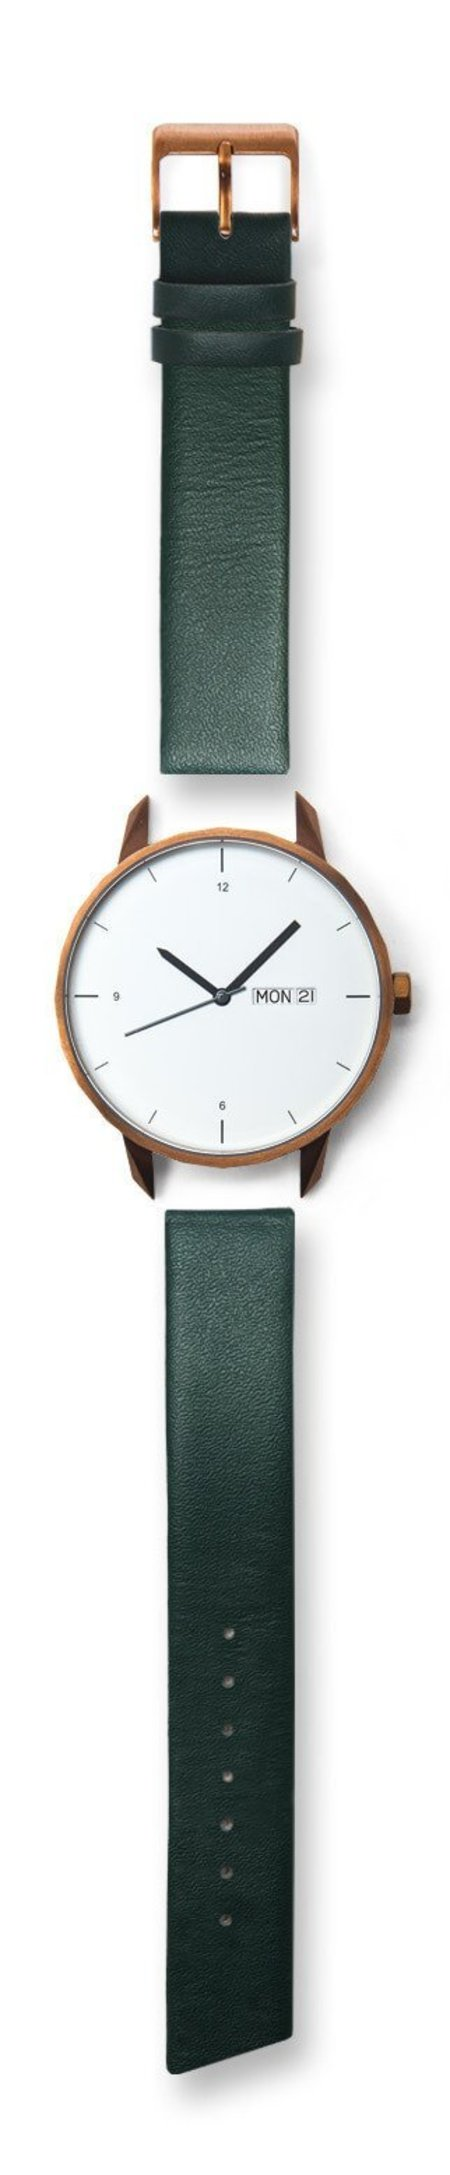 Unisex  Tinker Watches 42mm Copper Watch Green Italian Leather Strap